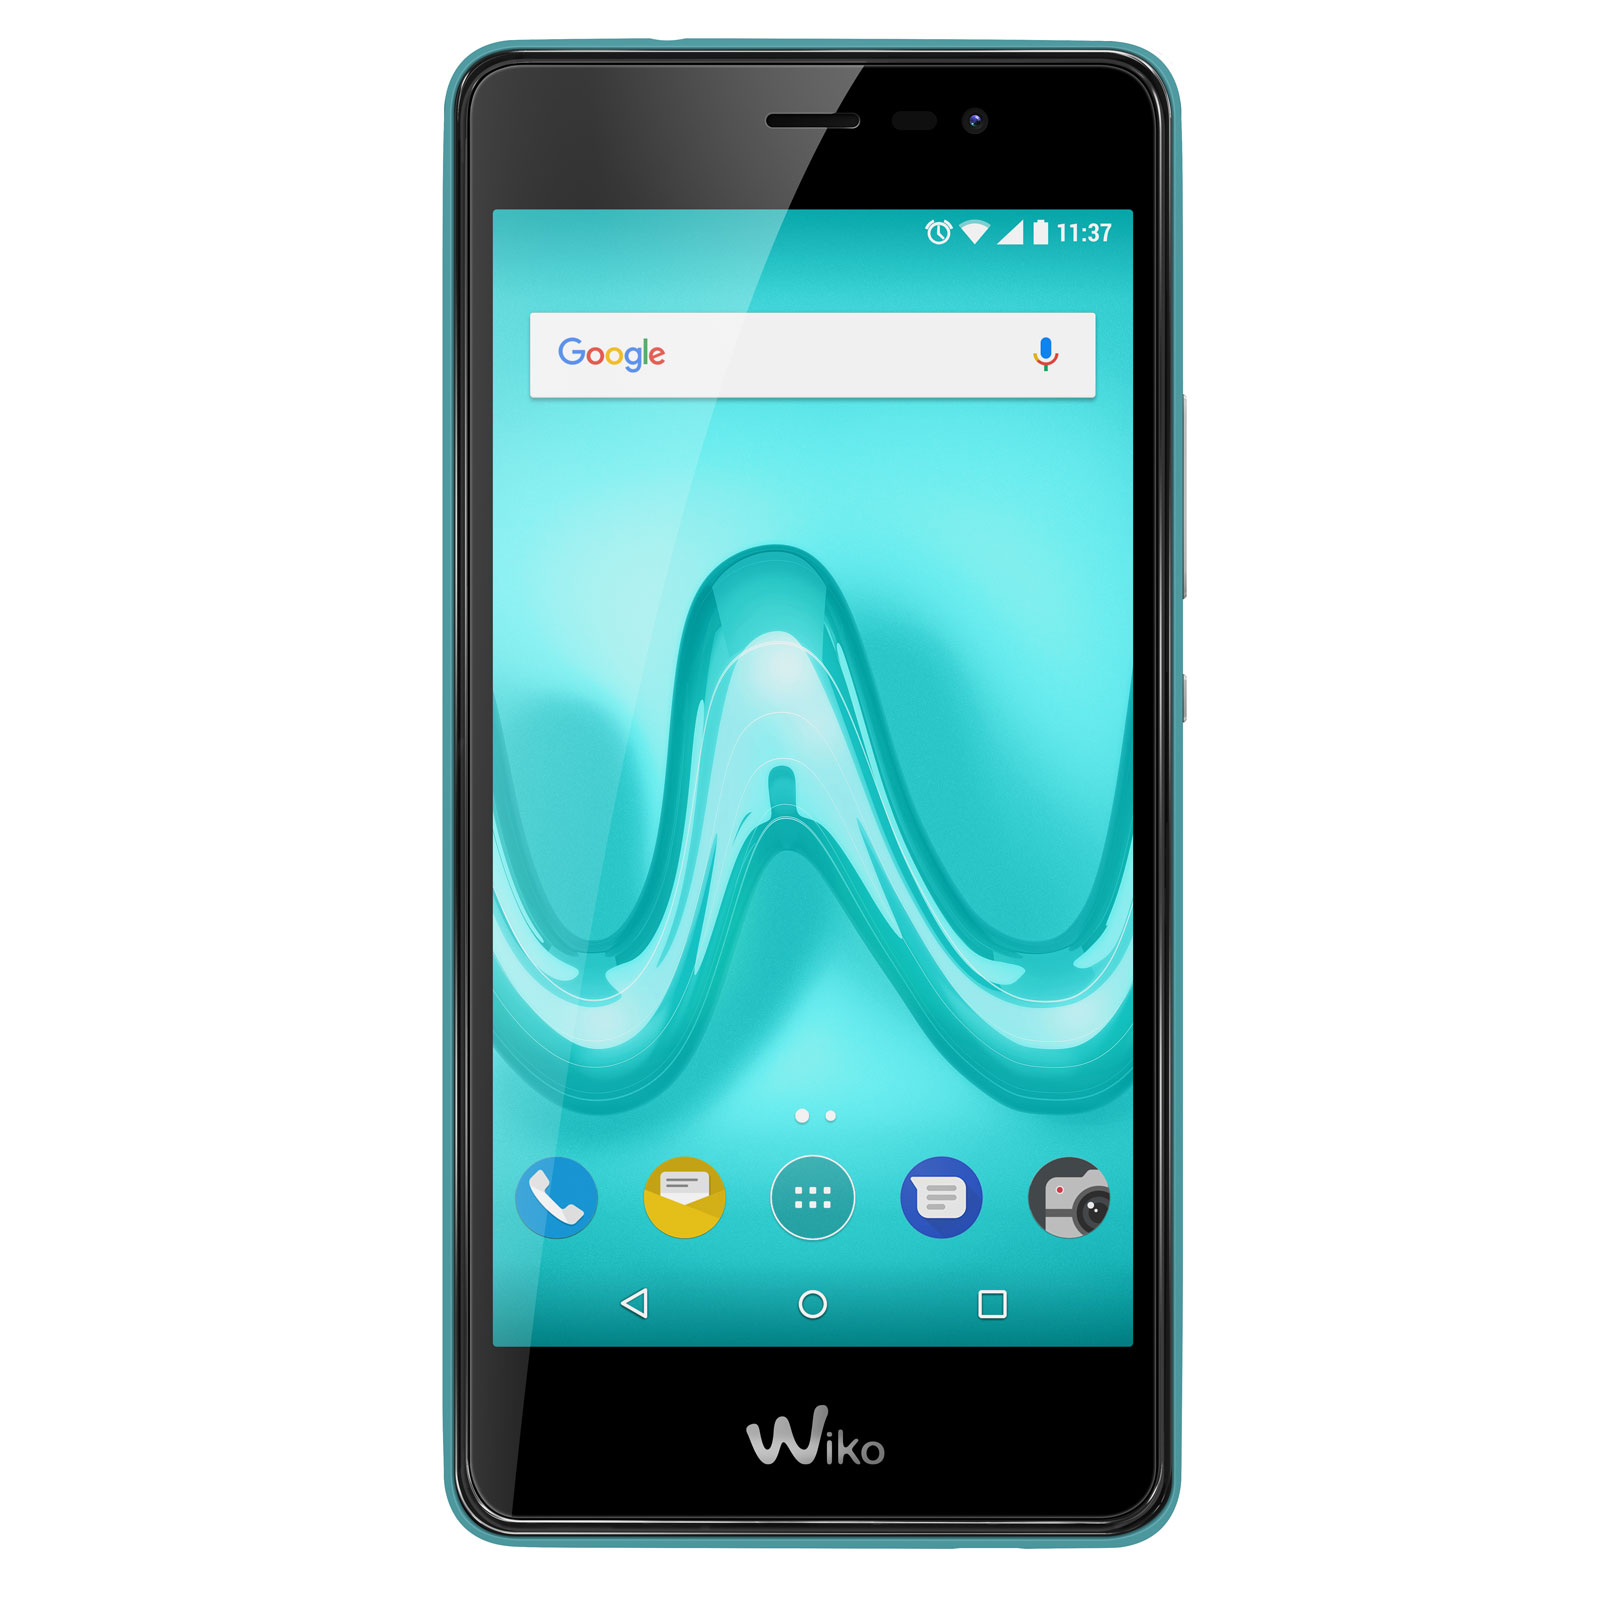 wiko tommy 2 bleen mobile smartphone wiko sur. Black Bedroom Furniture Sets. Home Design Ideas